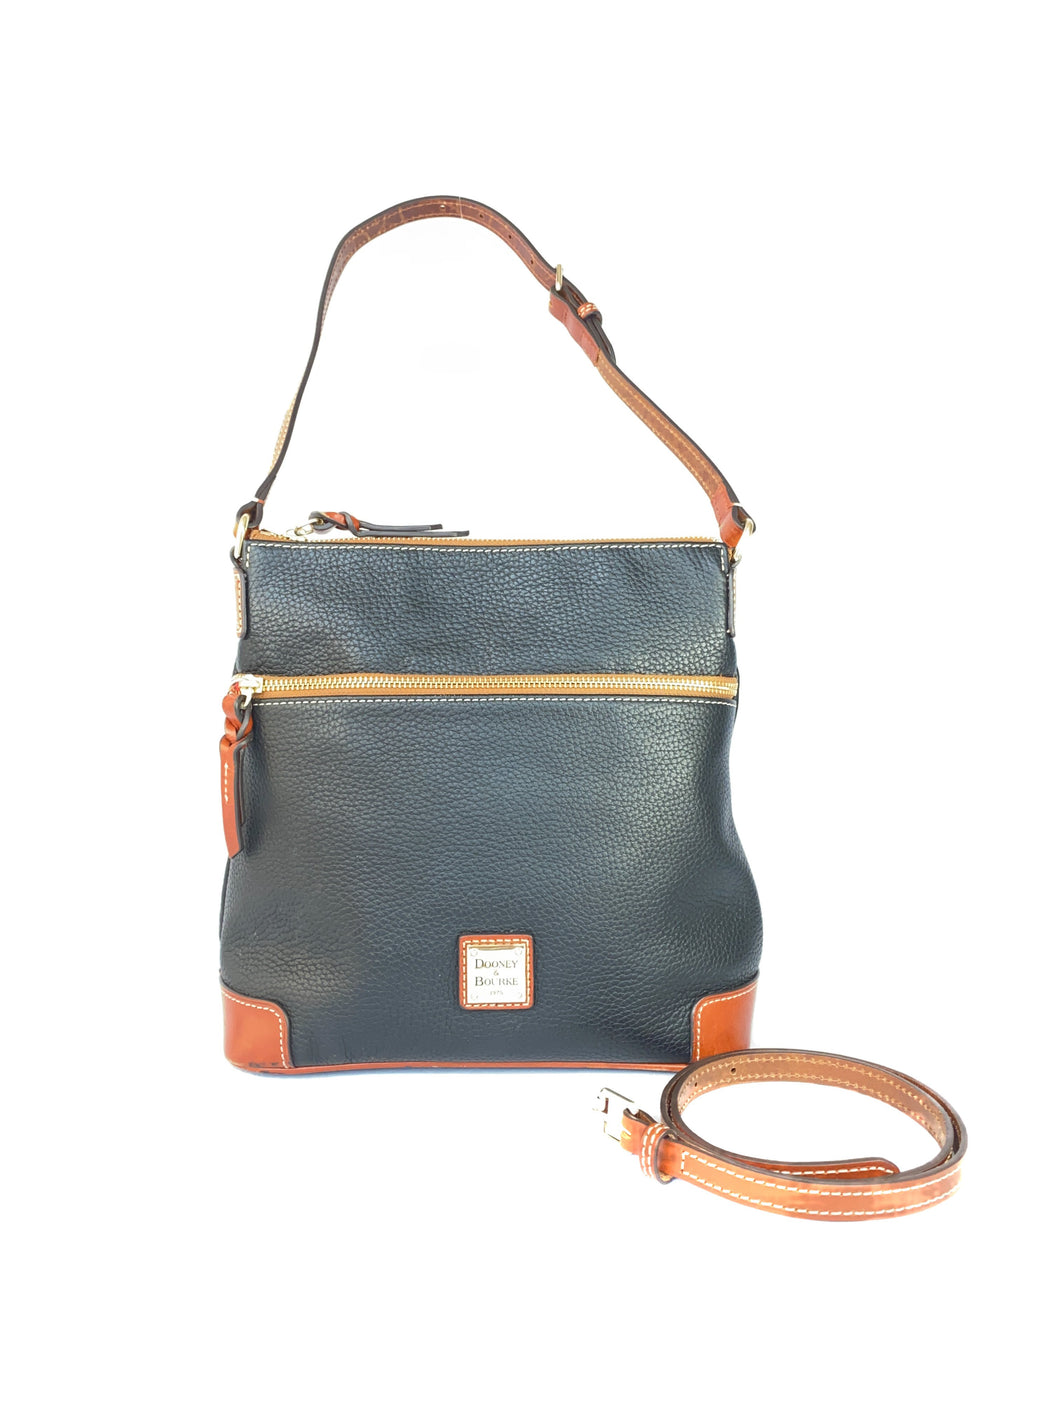 Dooney & Bourke black and brown leather convertible bag - My Girlfriend's Wardrobe LLC